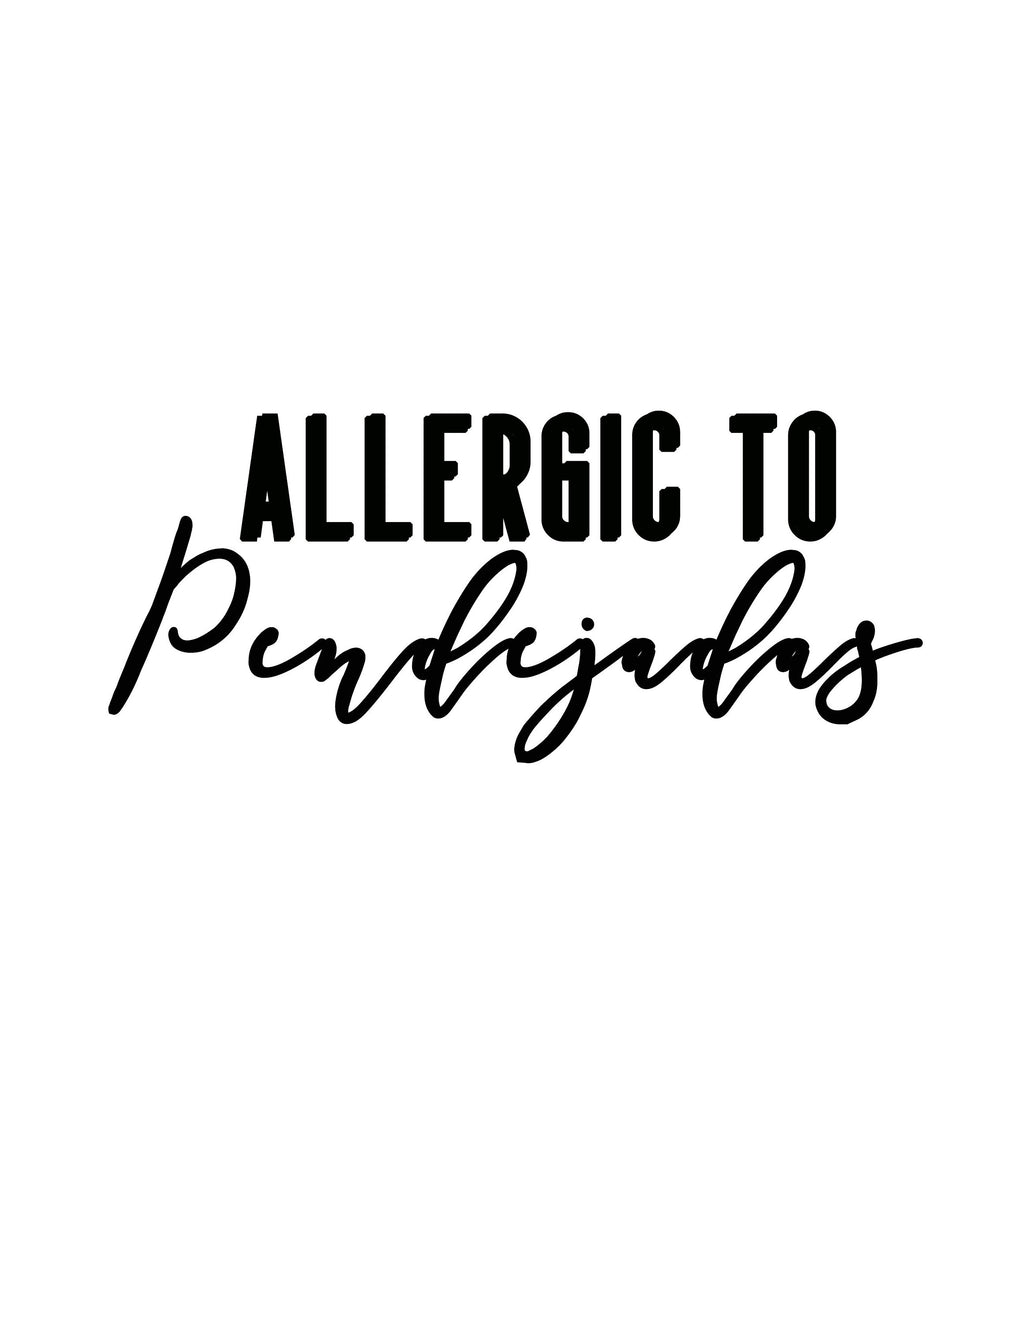 Alergic to Pendejadas Sticker